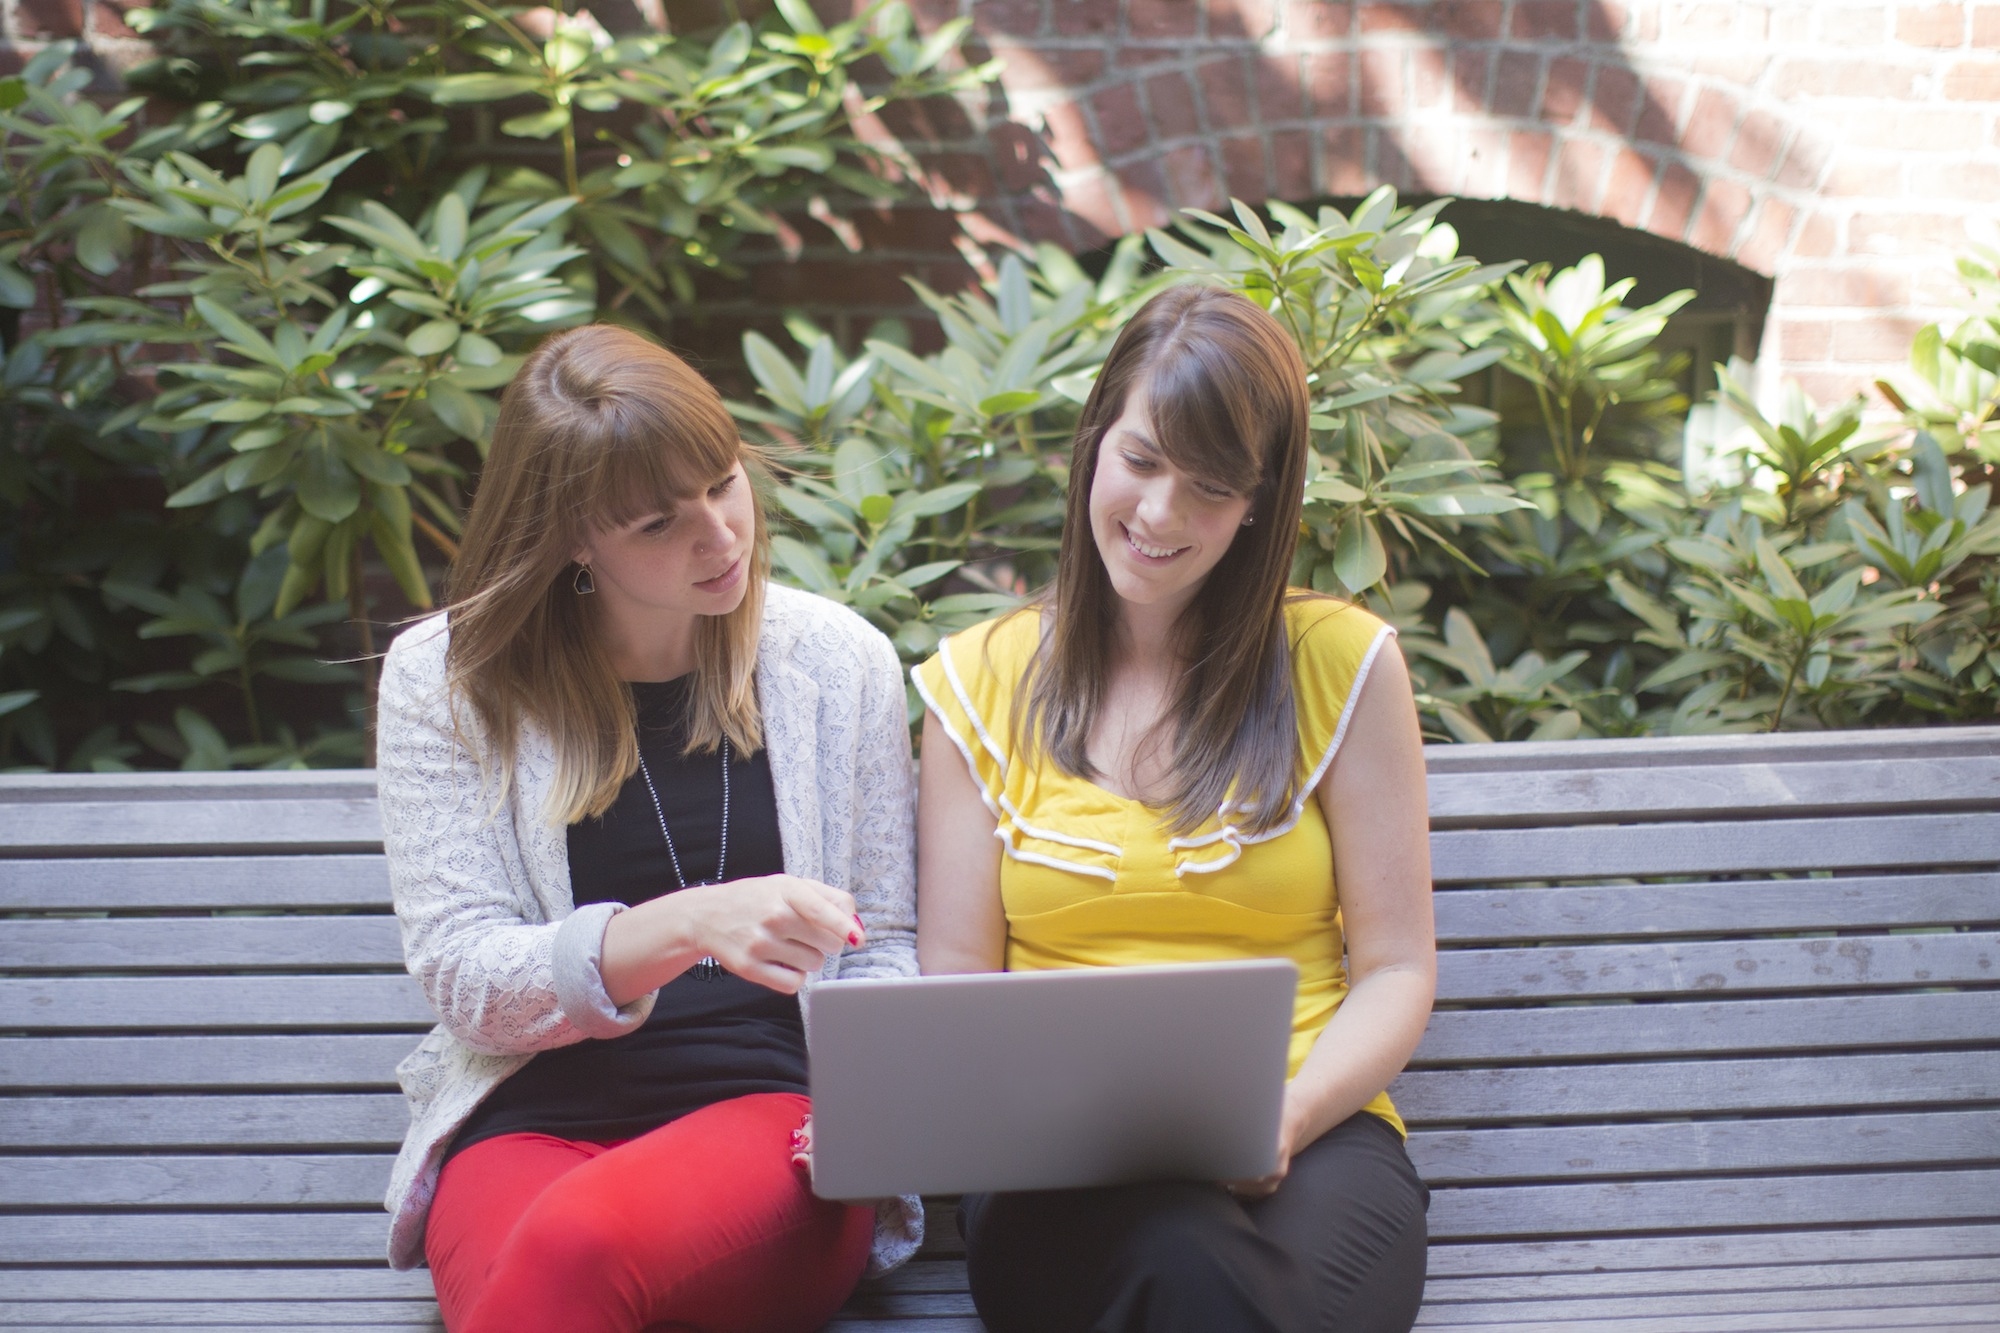 How are you engaging your audience? They're online and waiting for a chance to interact!